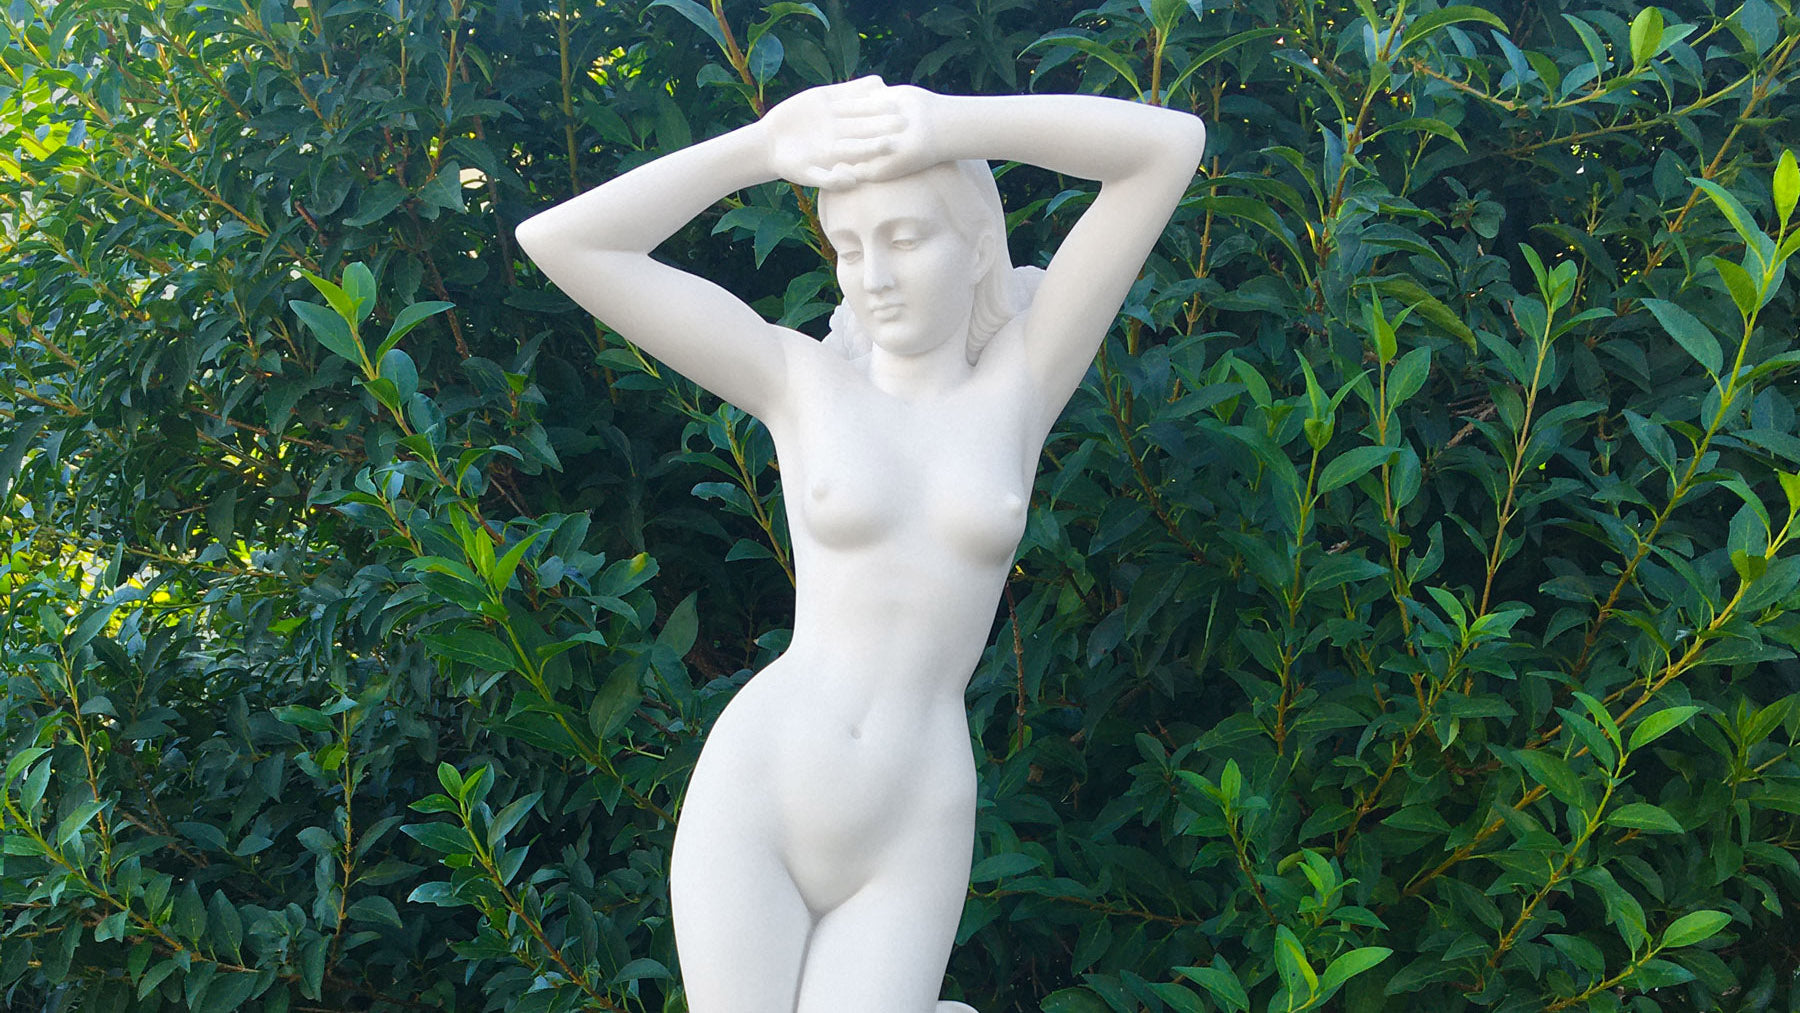 venus de milo statue replica video thumbnail